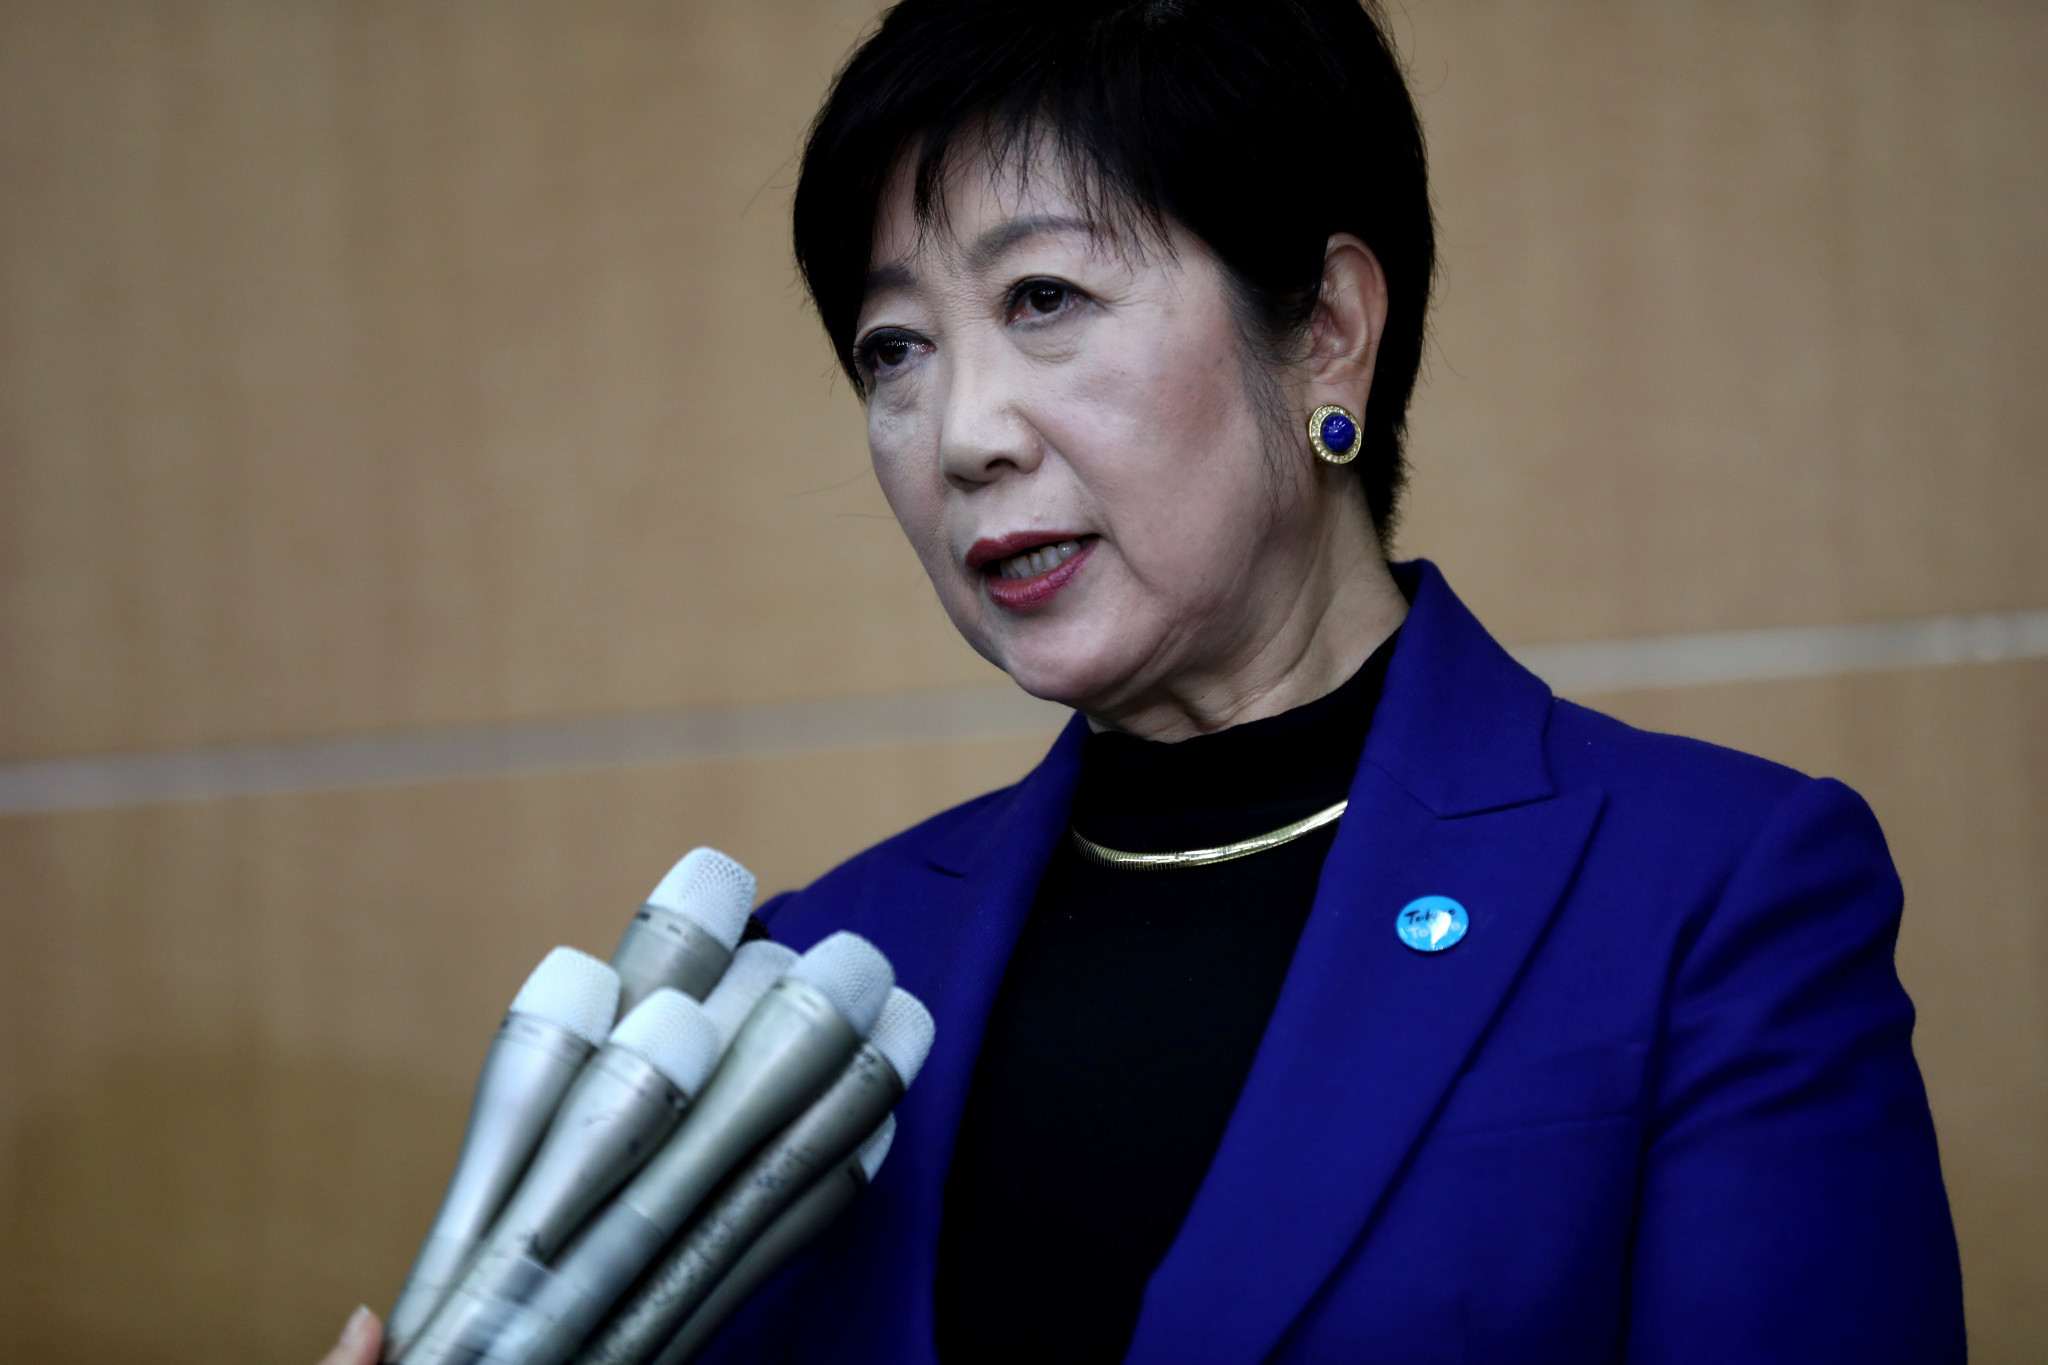 Tokyo's Governor Yuriko Koike says the Torch Relay will build momentum ahead of the Olympics and Paralympics ©Getty Images